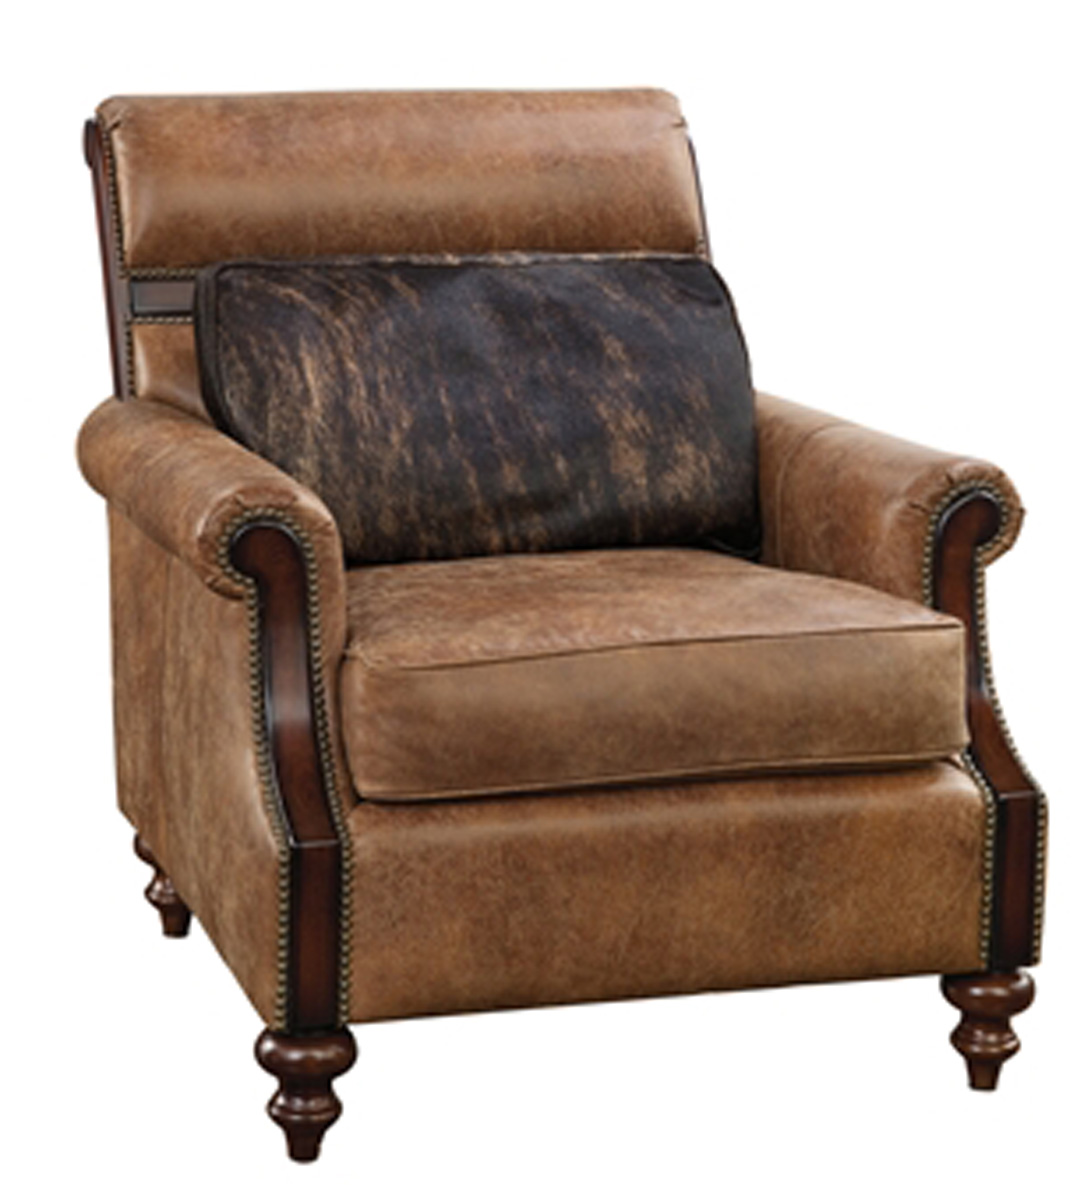 Light Tan Leather Upholstered Occasional Chair